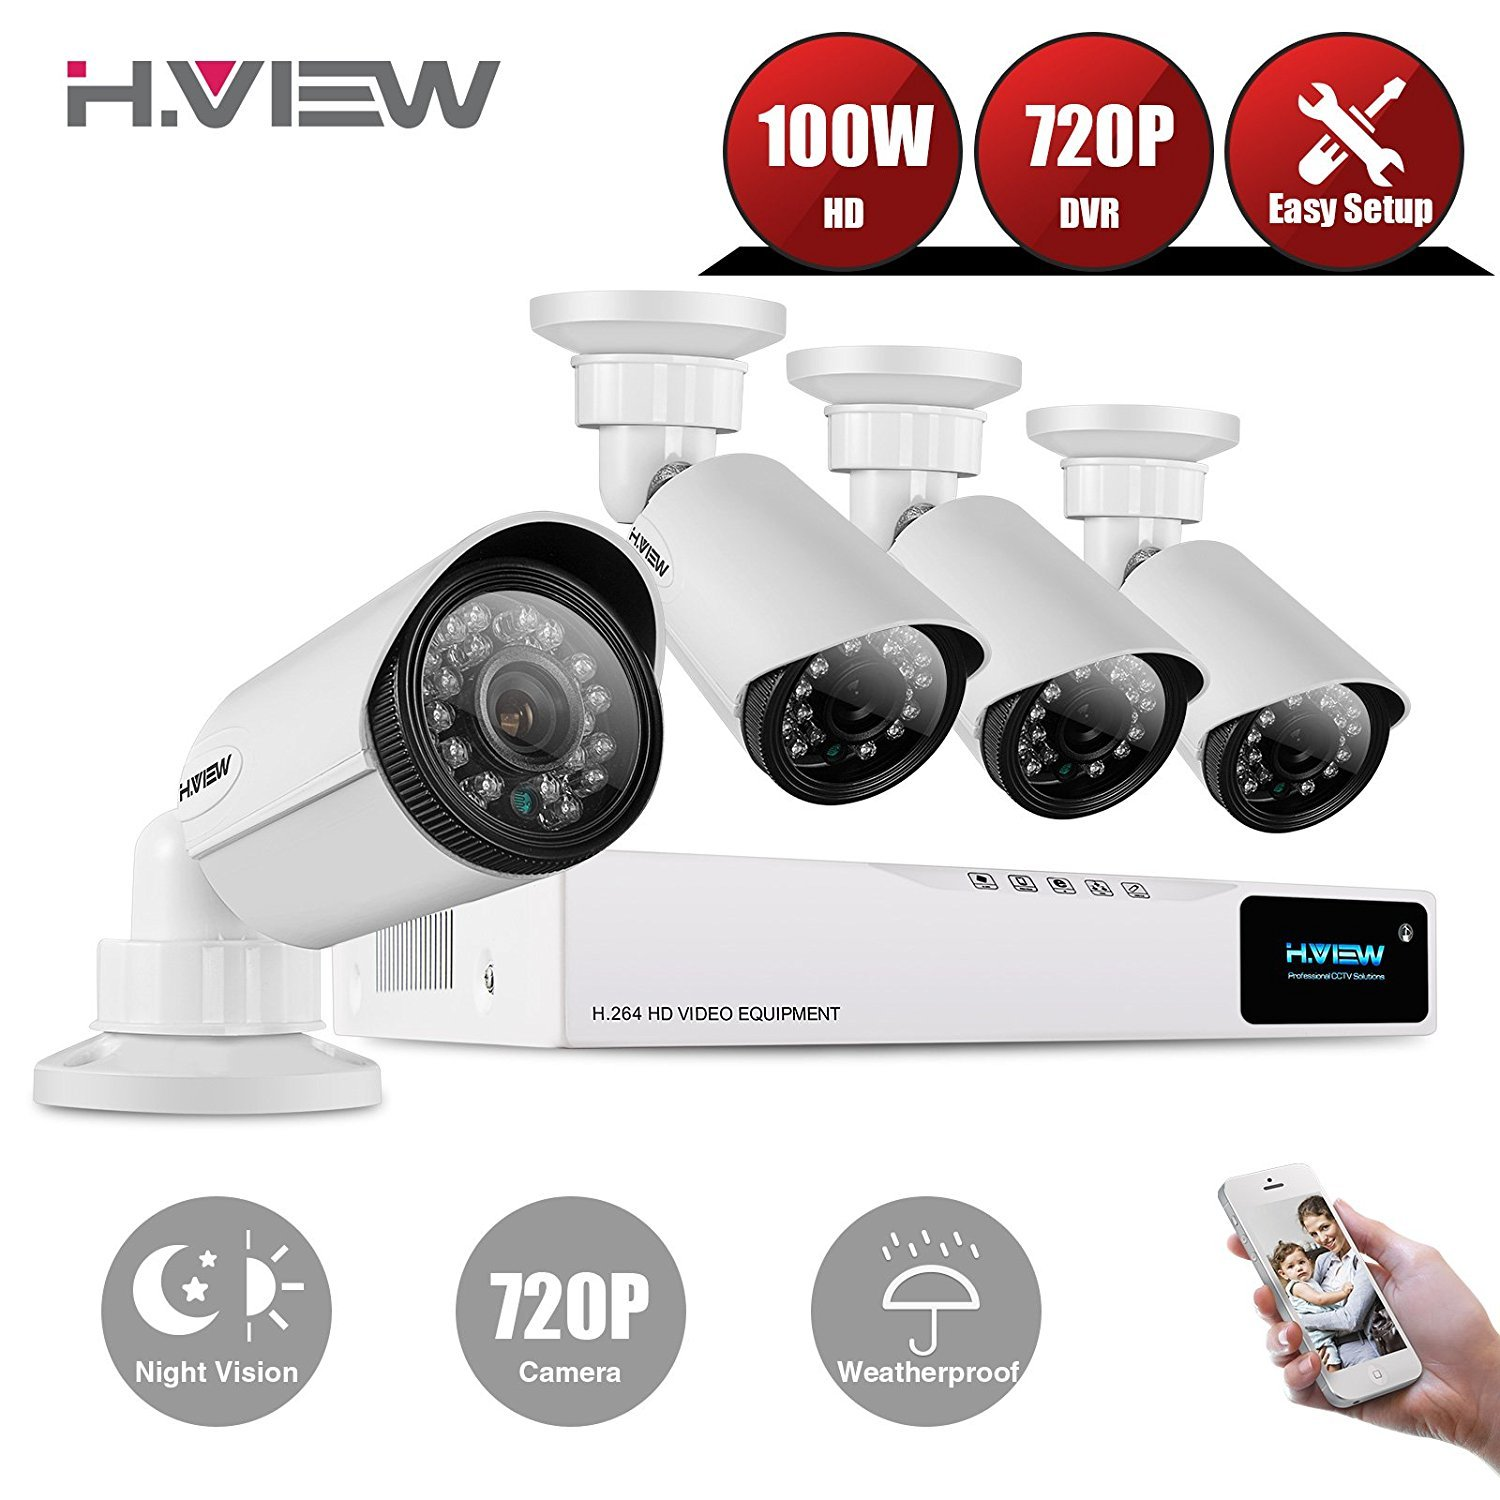 H.View 720p Home Security CCTV System, 4 Channel H.264 720P